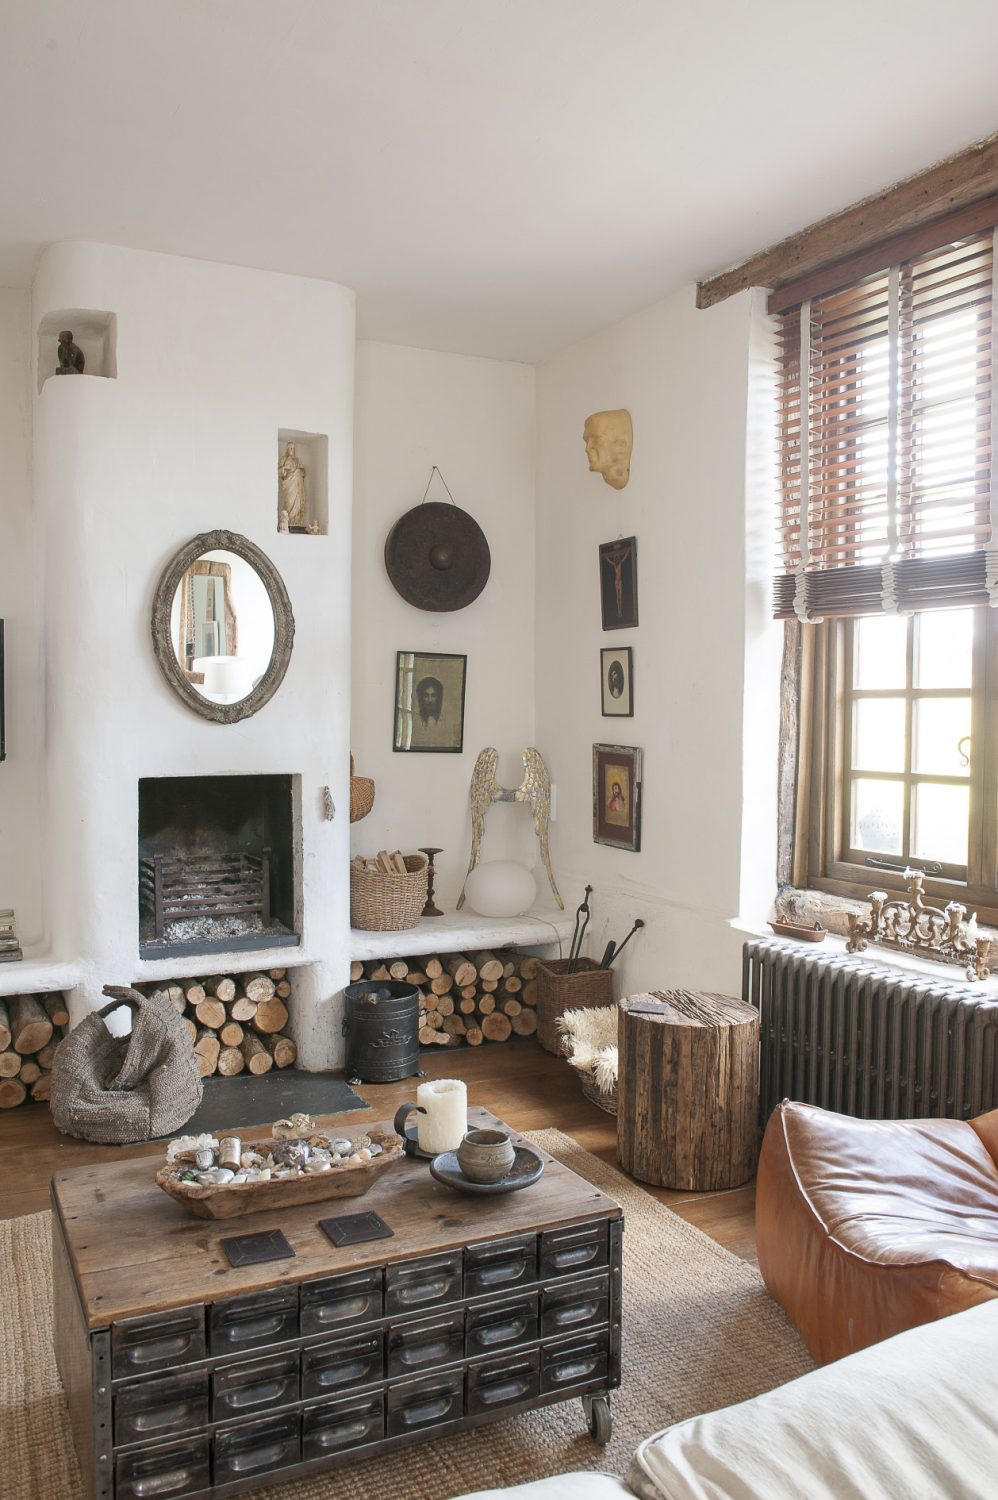 A cosy seating area gathers around a white Moorish fireplace and chimney